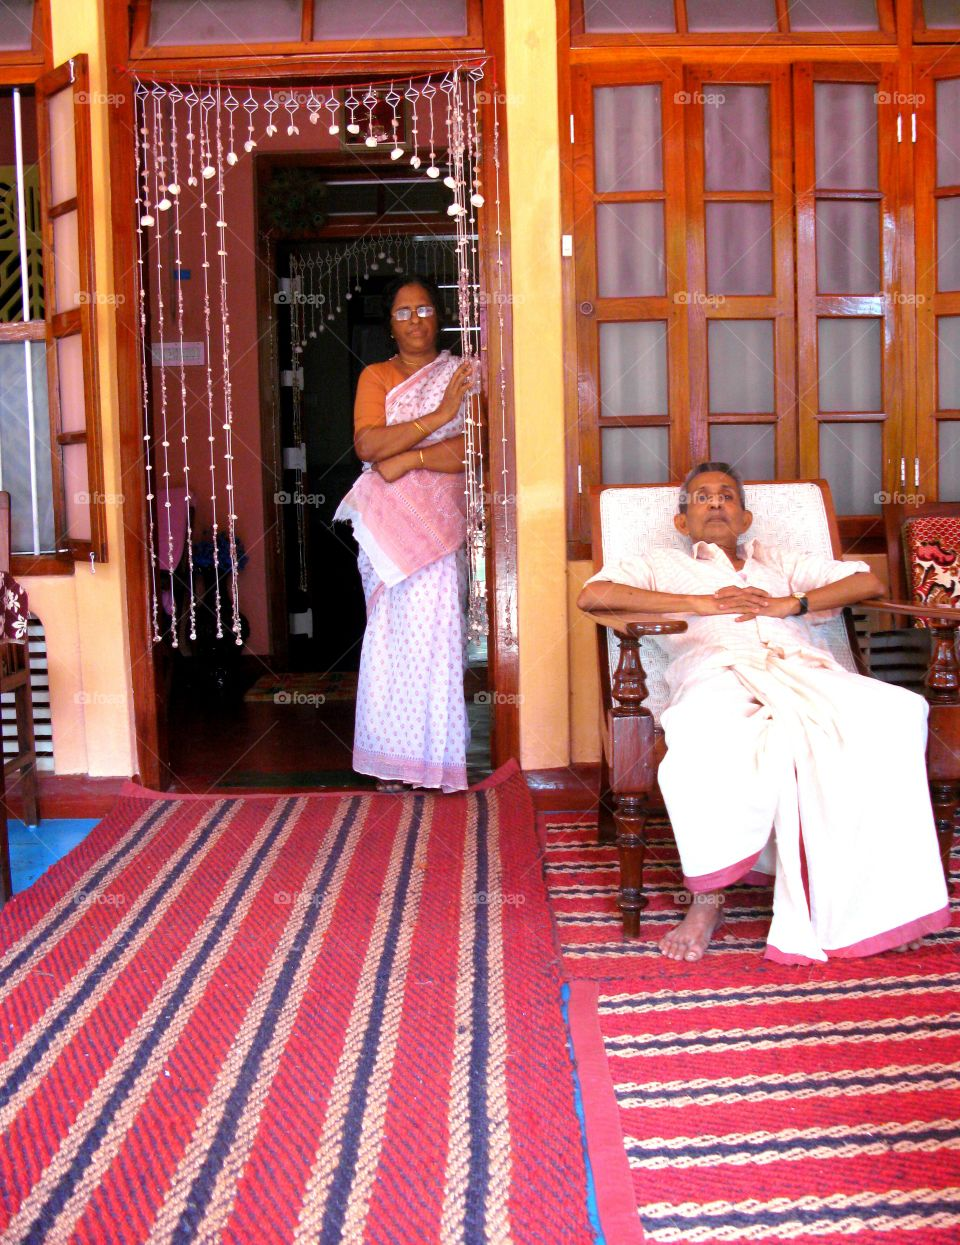 Indian charming couple in Allepey, Kerala, South India